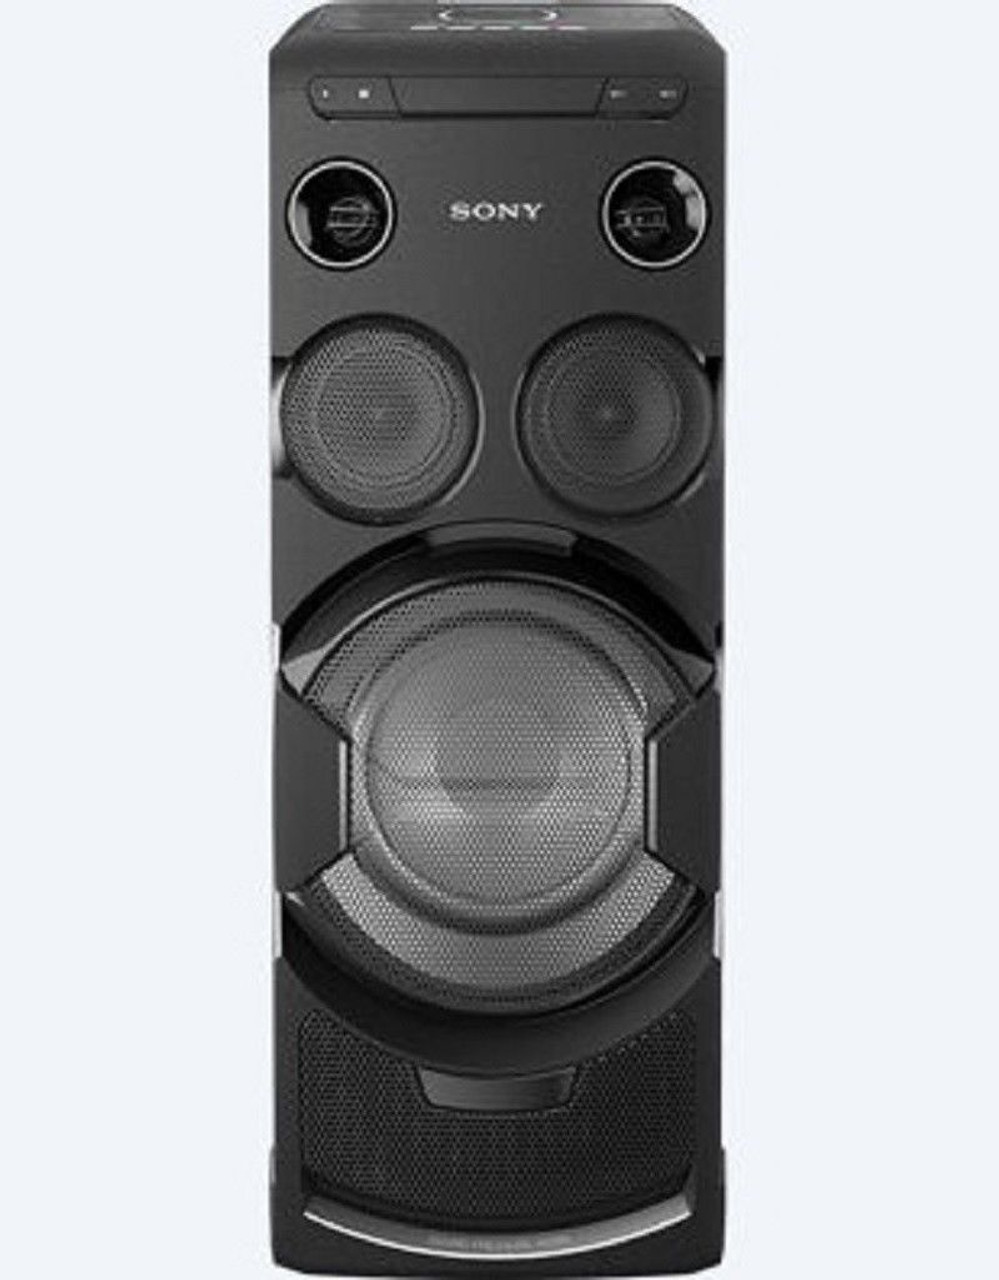 Sony MHC-V77DW High Power Audio System with Wi-Fi and BLUETOOTH - RRP $899.00